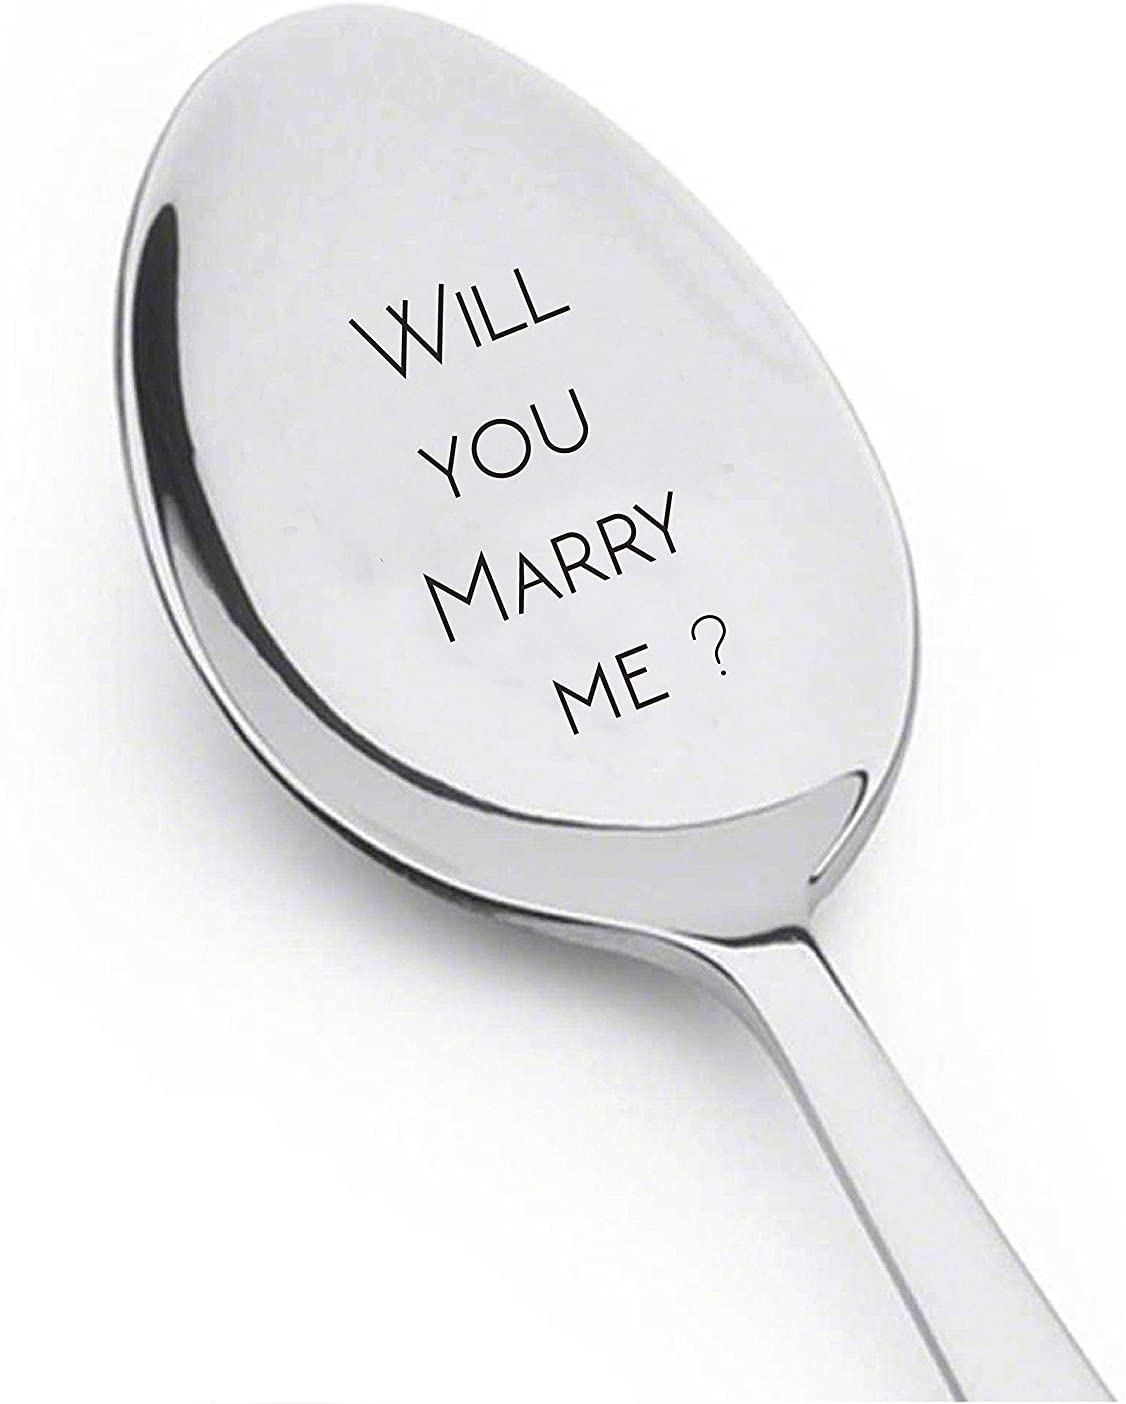 Will You Marry Me Spoon Surprise Your Loved One with an Unexpected Proposal gift for her keepsake gift valentine sweet proposal gift Spoon Gift unique gift